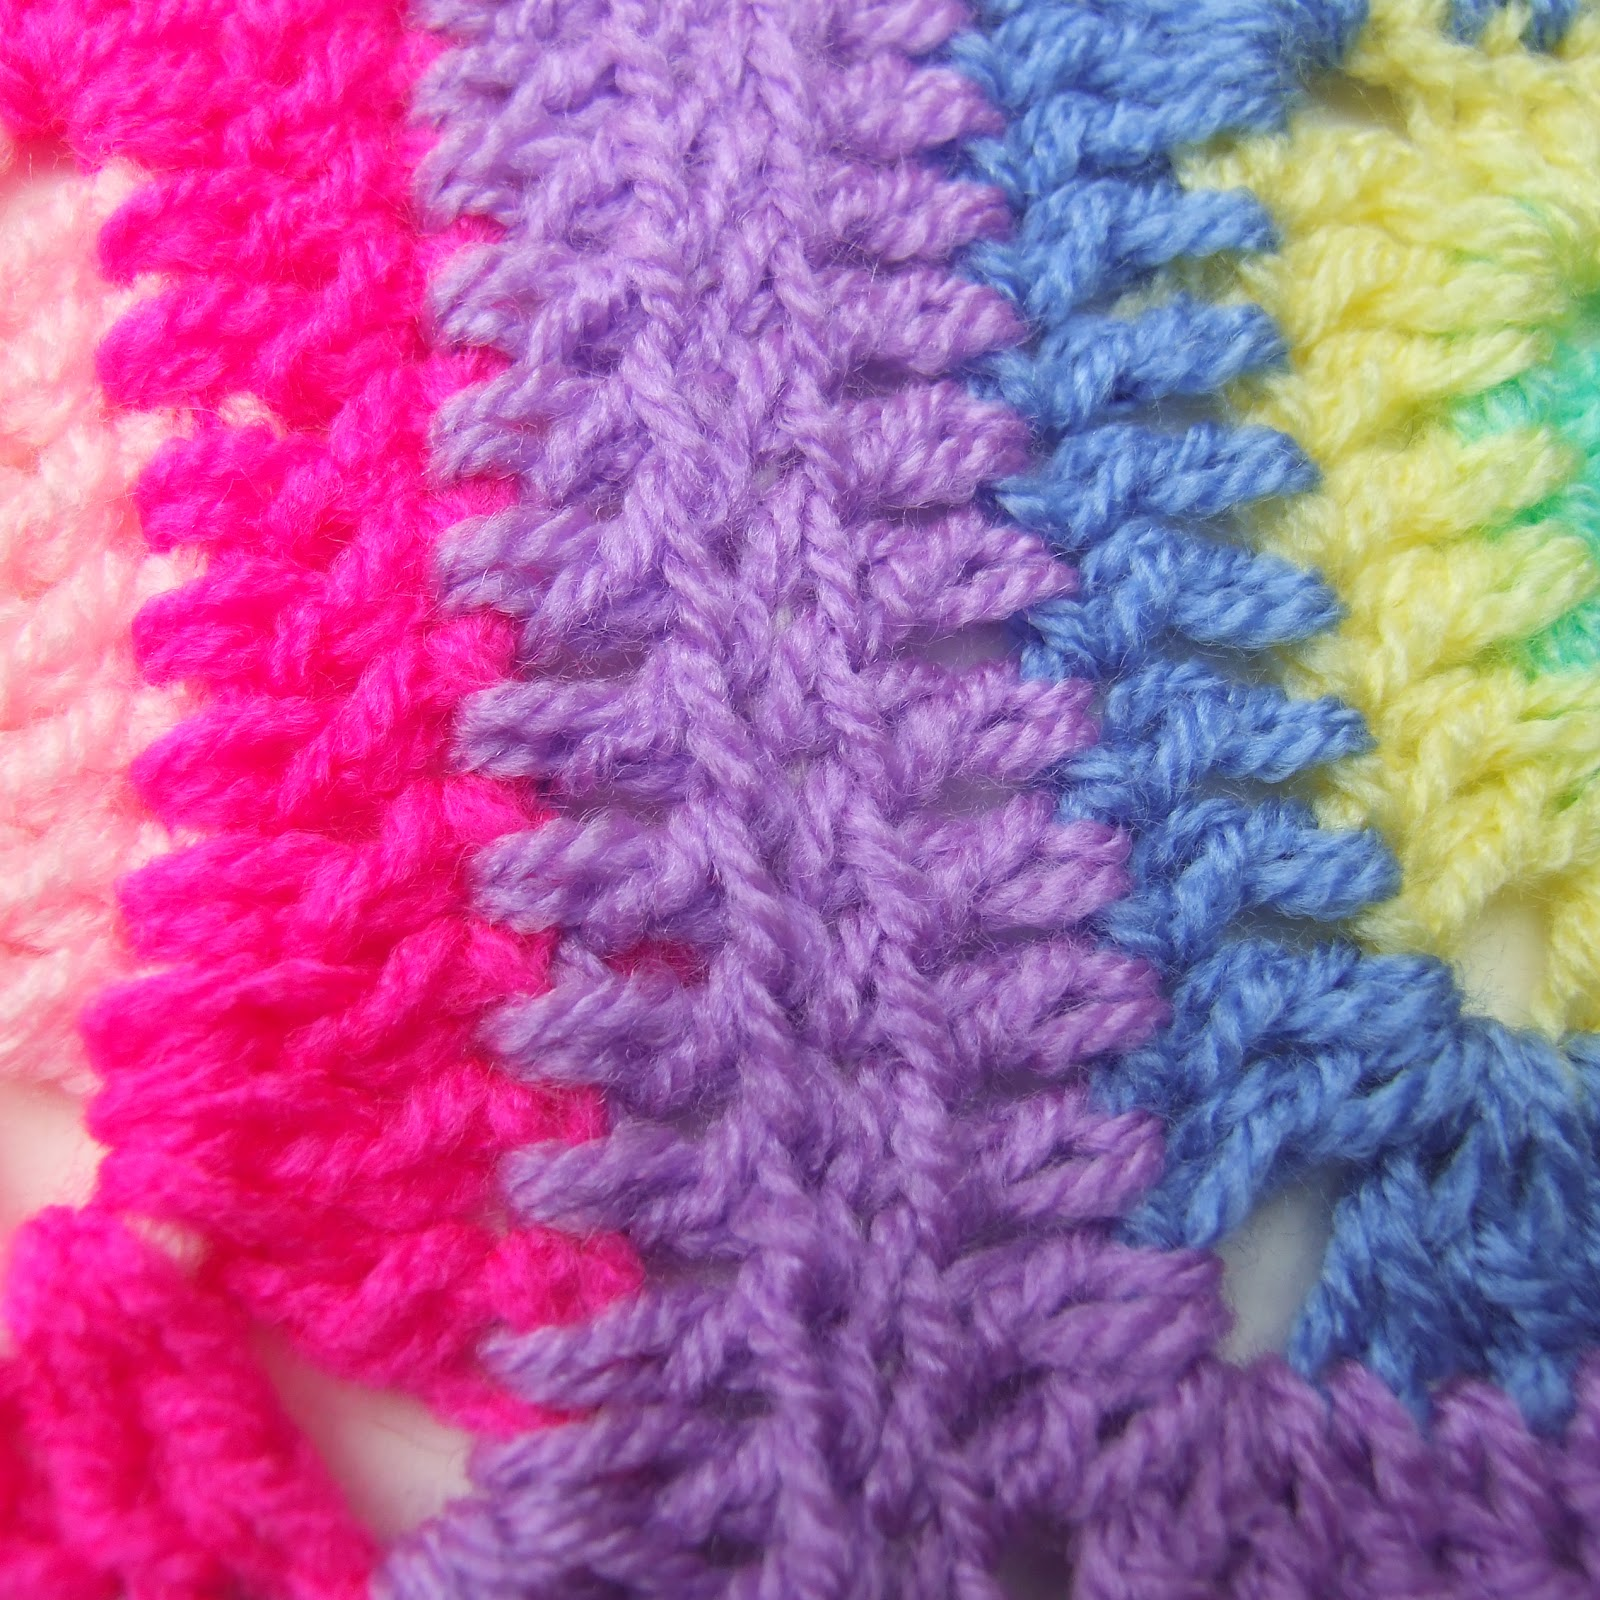 Crochet Join Stitch : ... (Reverse Mattress Stitch) - Joining Crochet Squares - leonie morgan